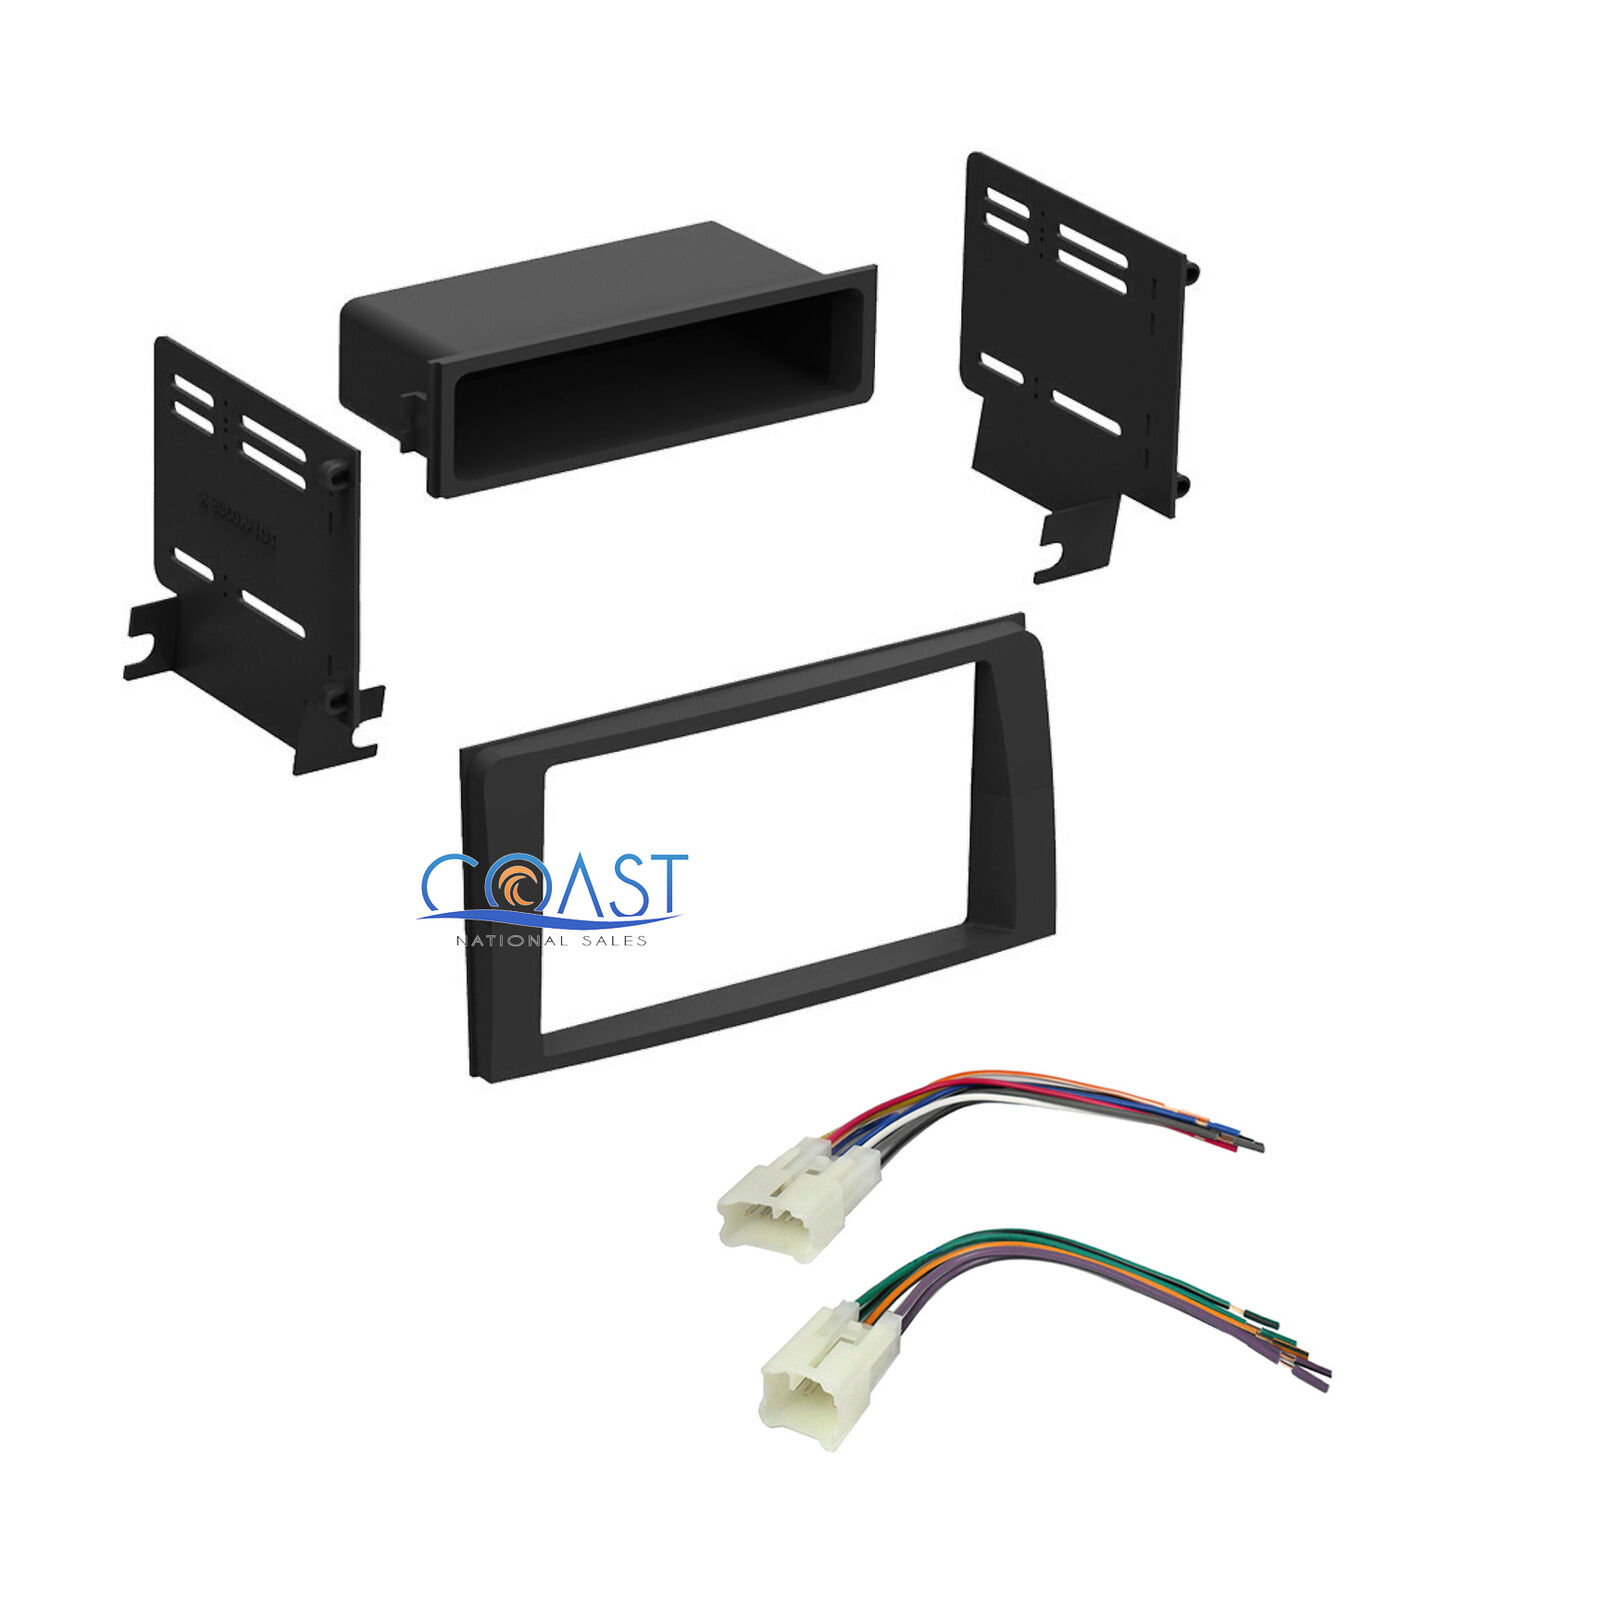 Car Stereo Double DIN Dash Kit Wiring Harness for 2003-2009 Toyota 4 Runner  1 of 3FREE Shipping See More